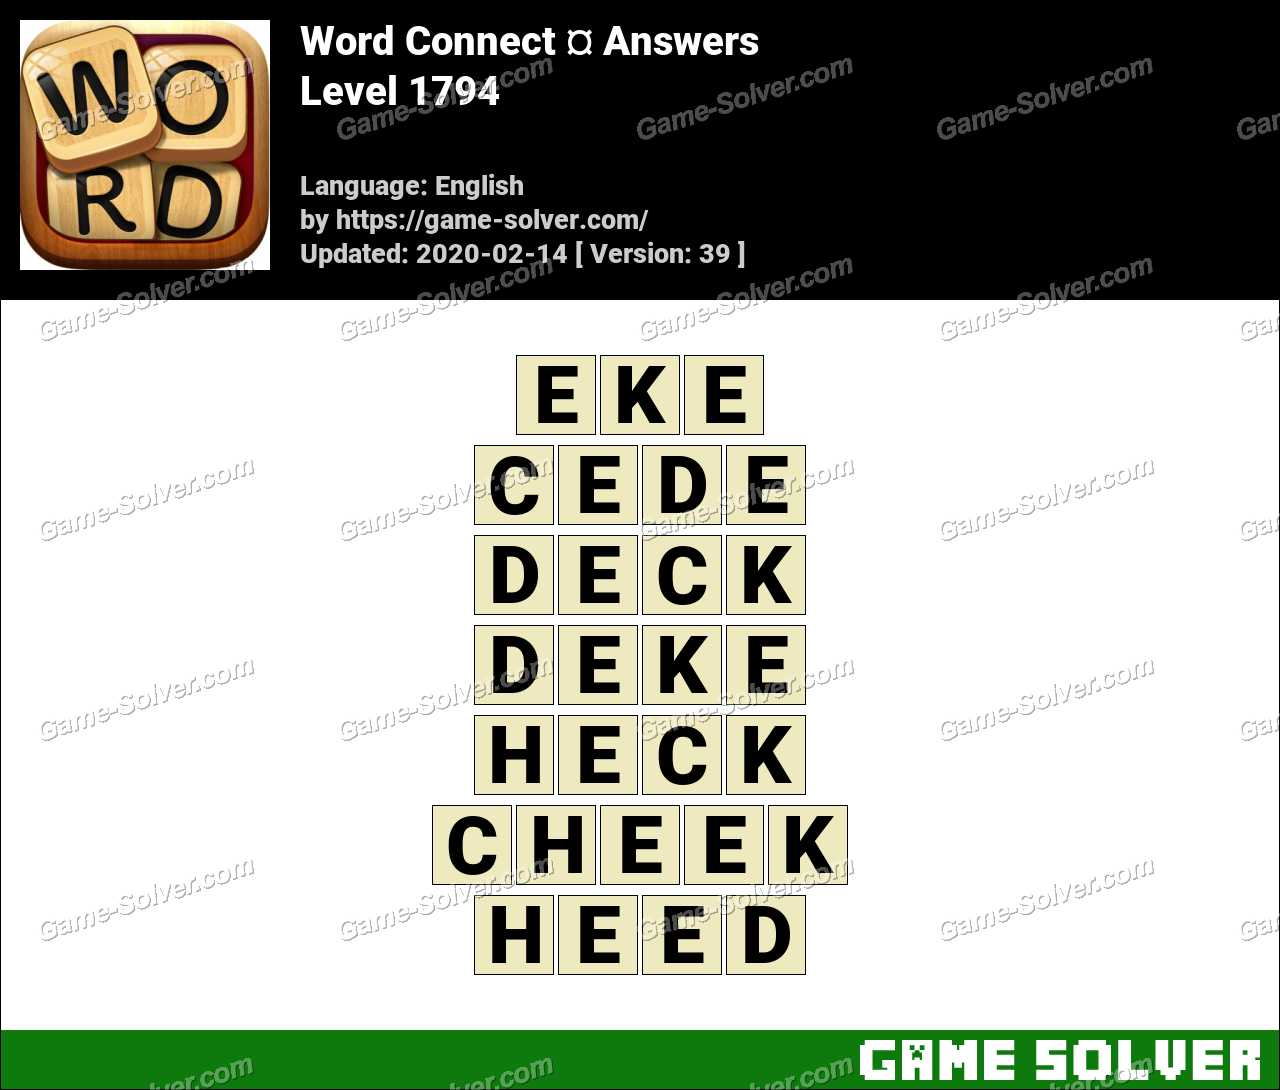 Word Connect Level 1794 Answers